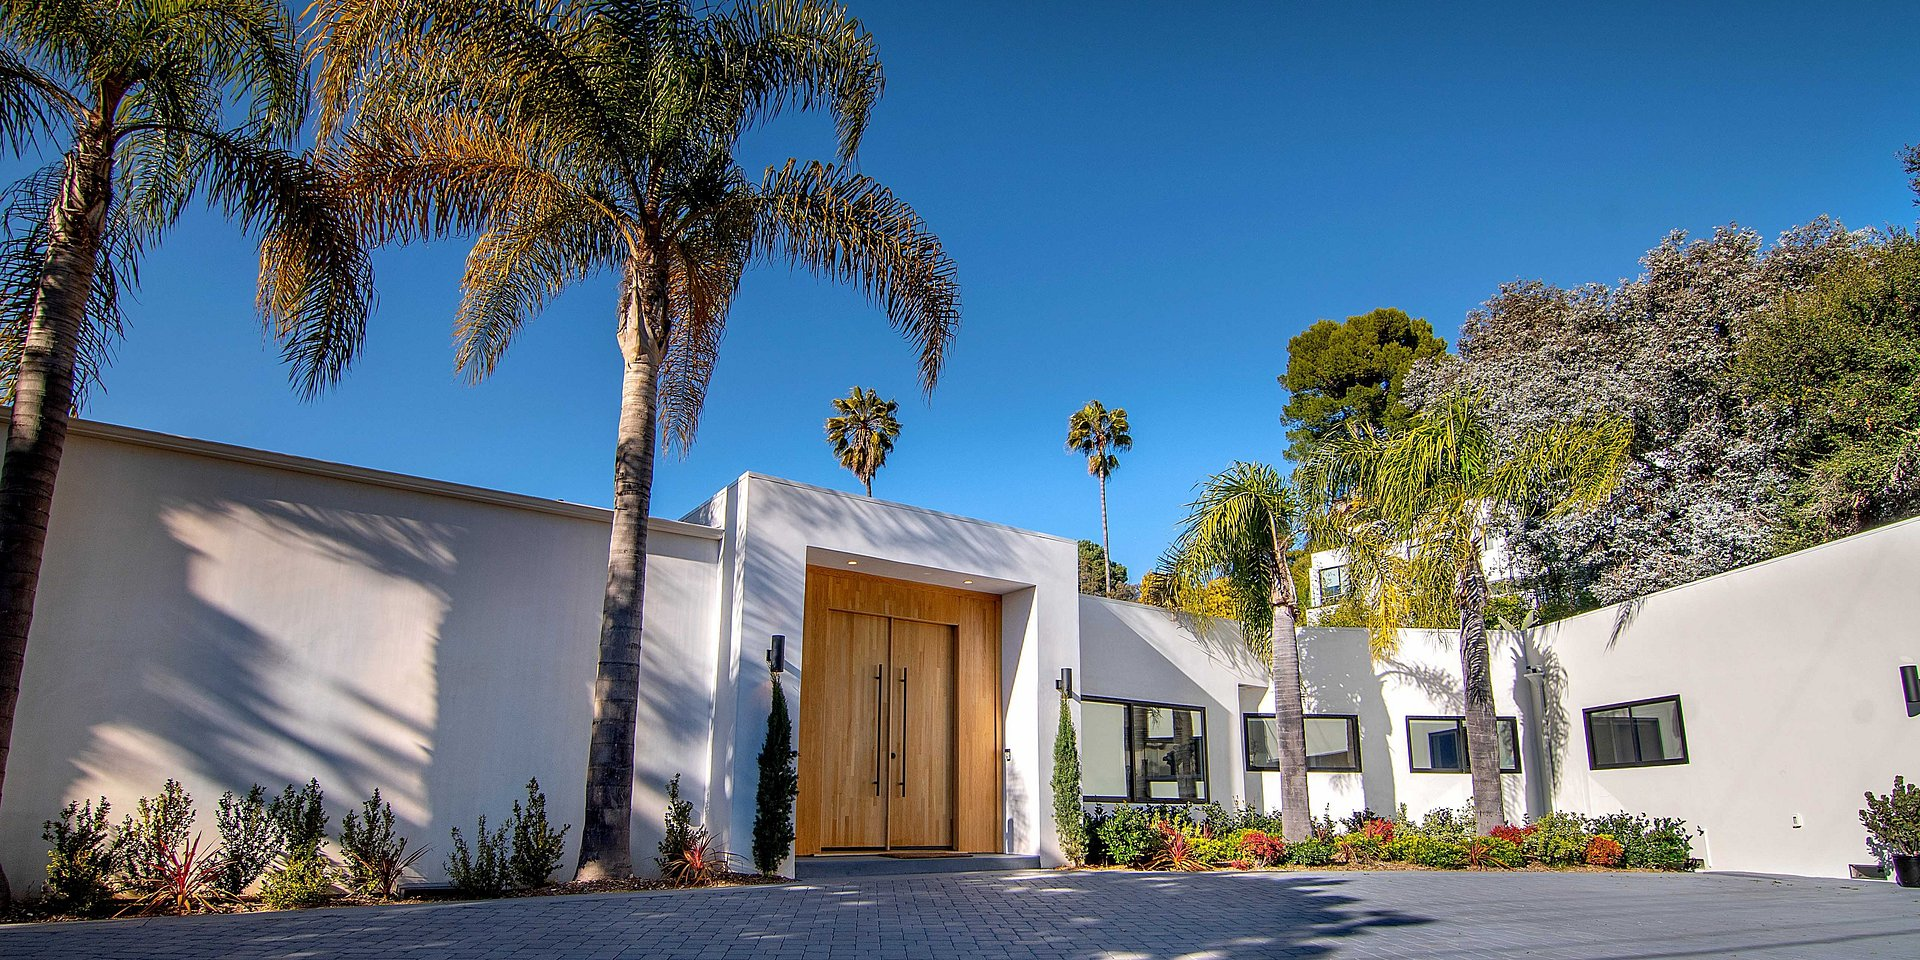 Coldwell Banker Realty Lists a Beverly Hills Property for $5.195 Million